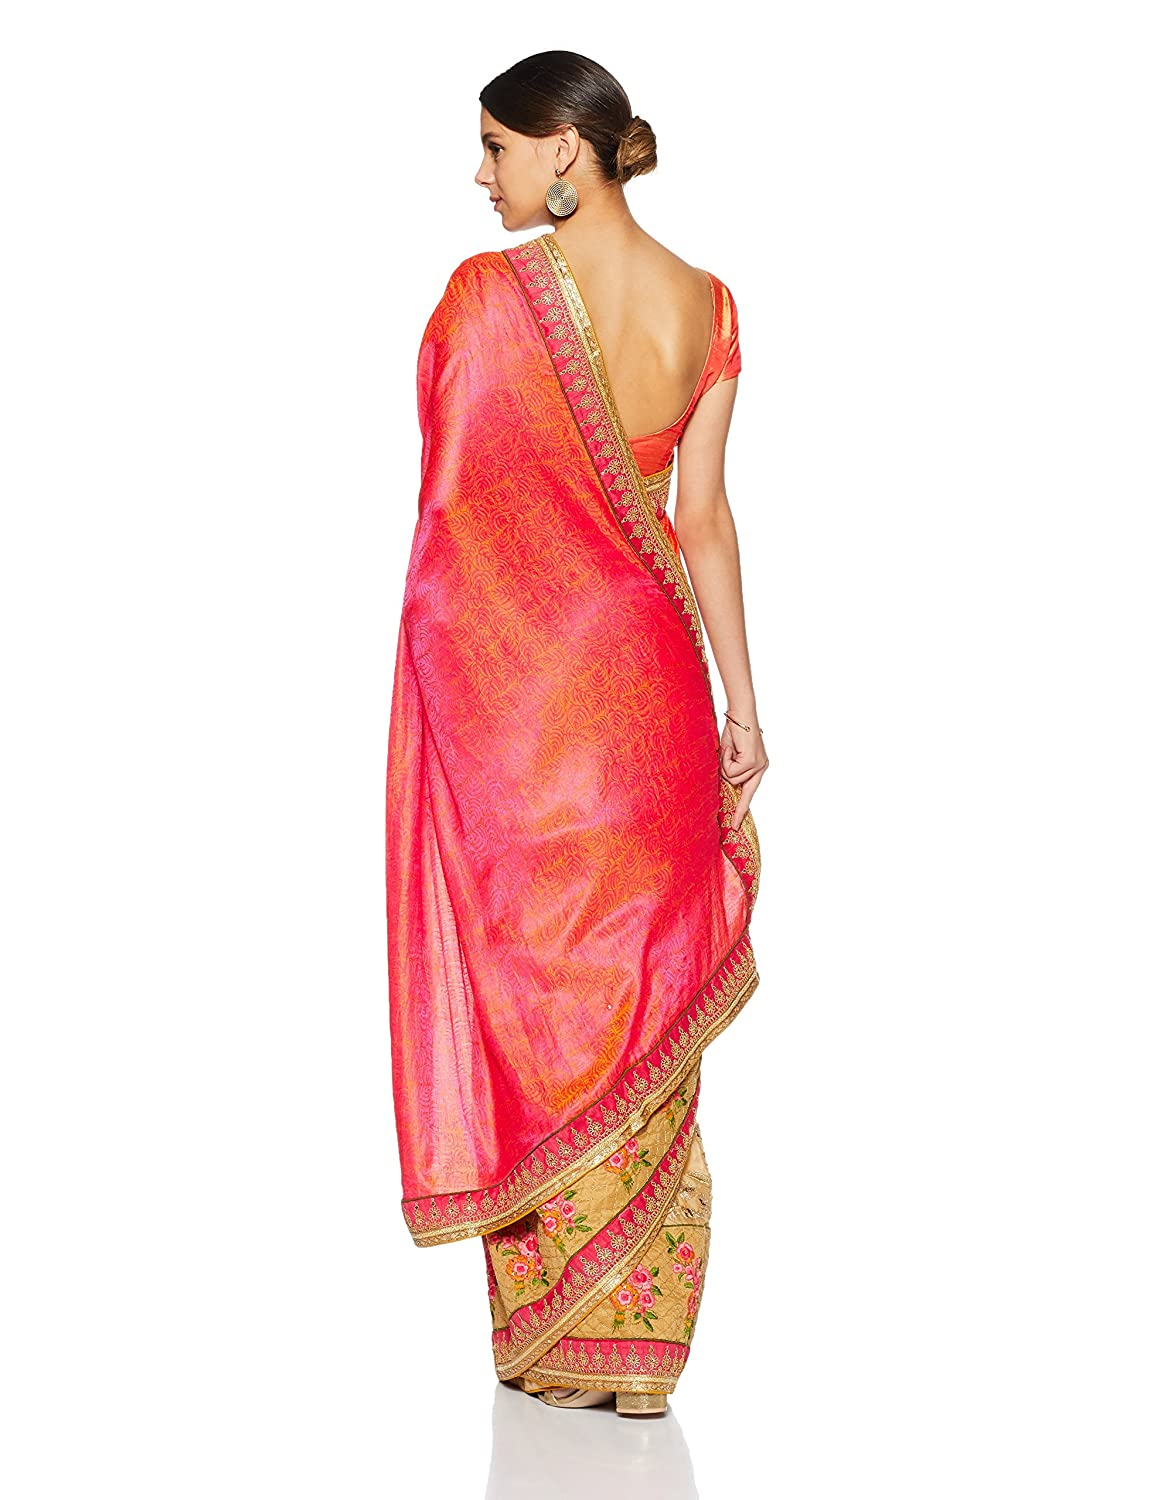 Beige and Bright Red Georgette Embroidered Saree with Blouse piece